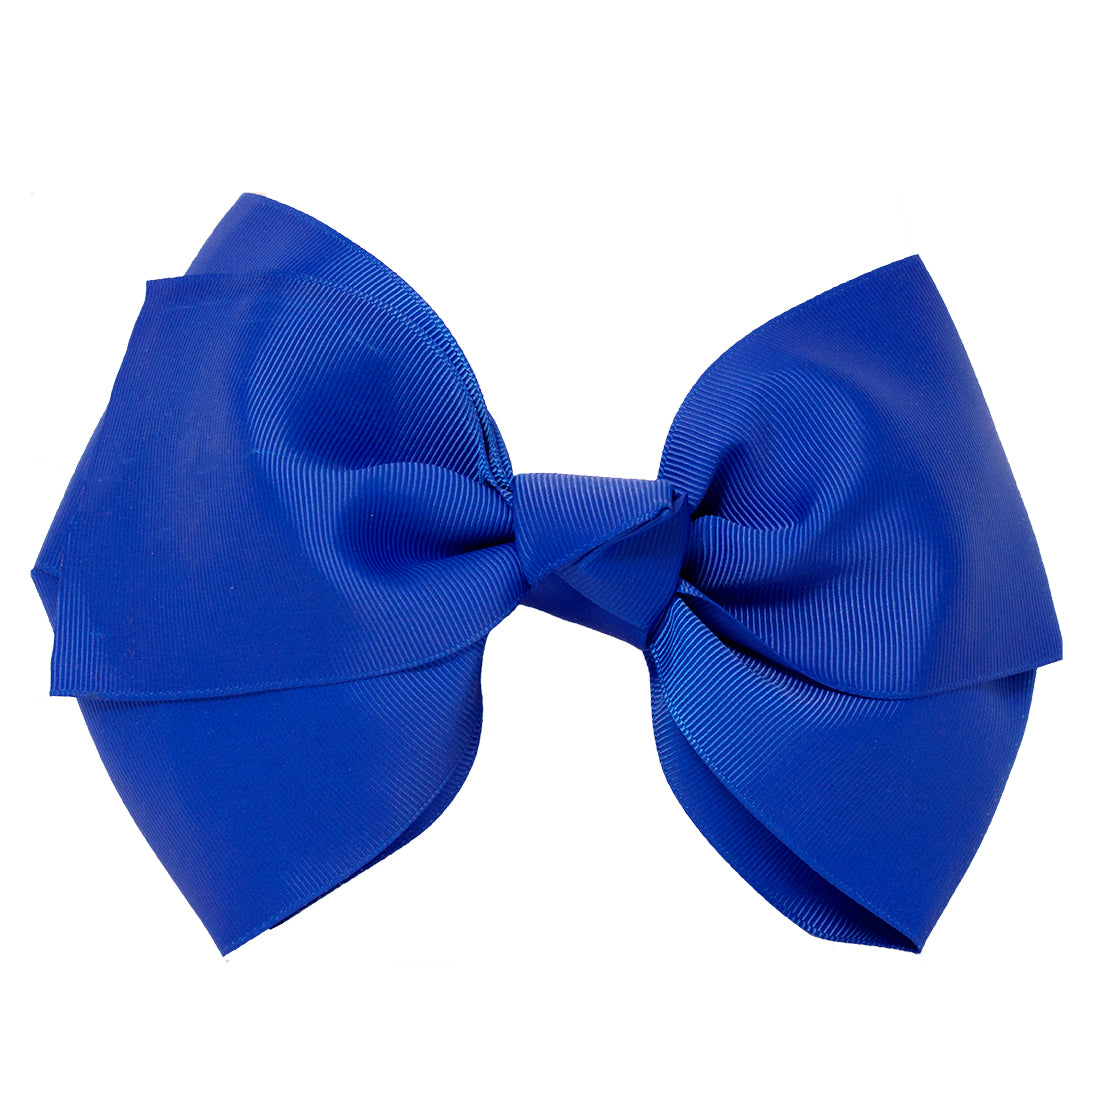 Mia Spirit Extra Large Grosgrain Bow Barrette - royal blue color - designed by #MiaKaminski of Mia Beauty